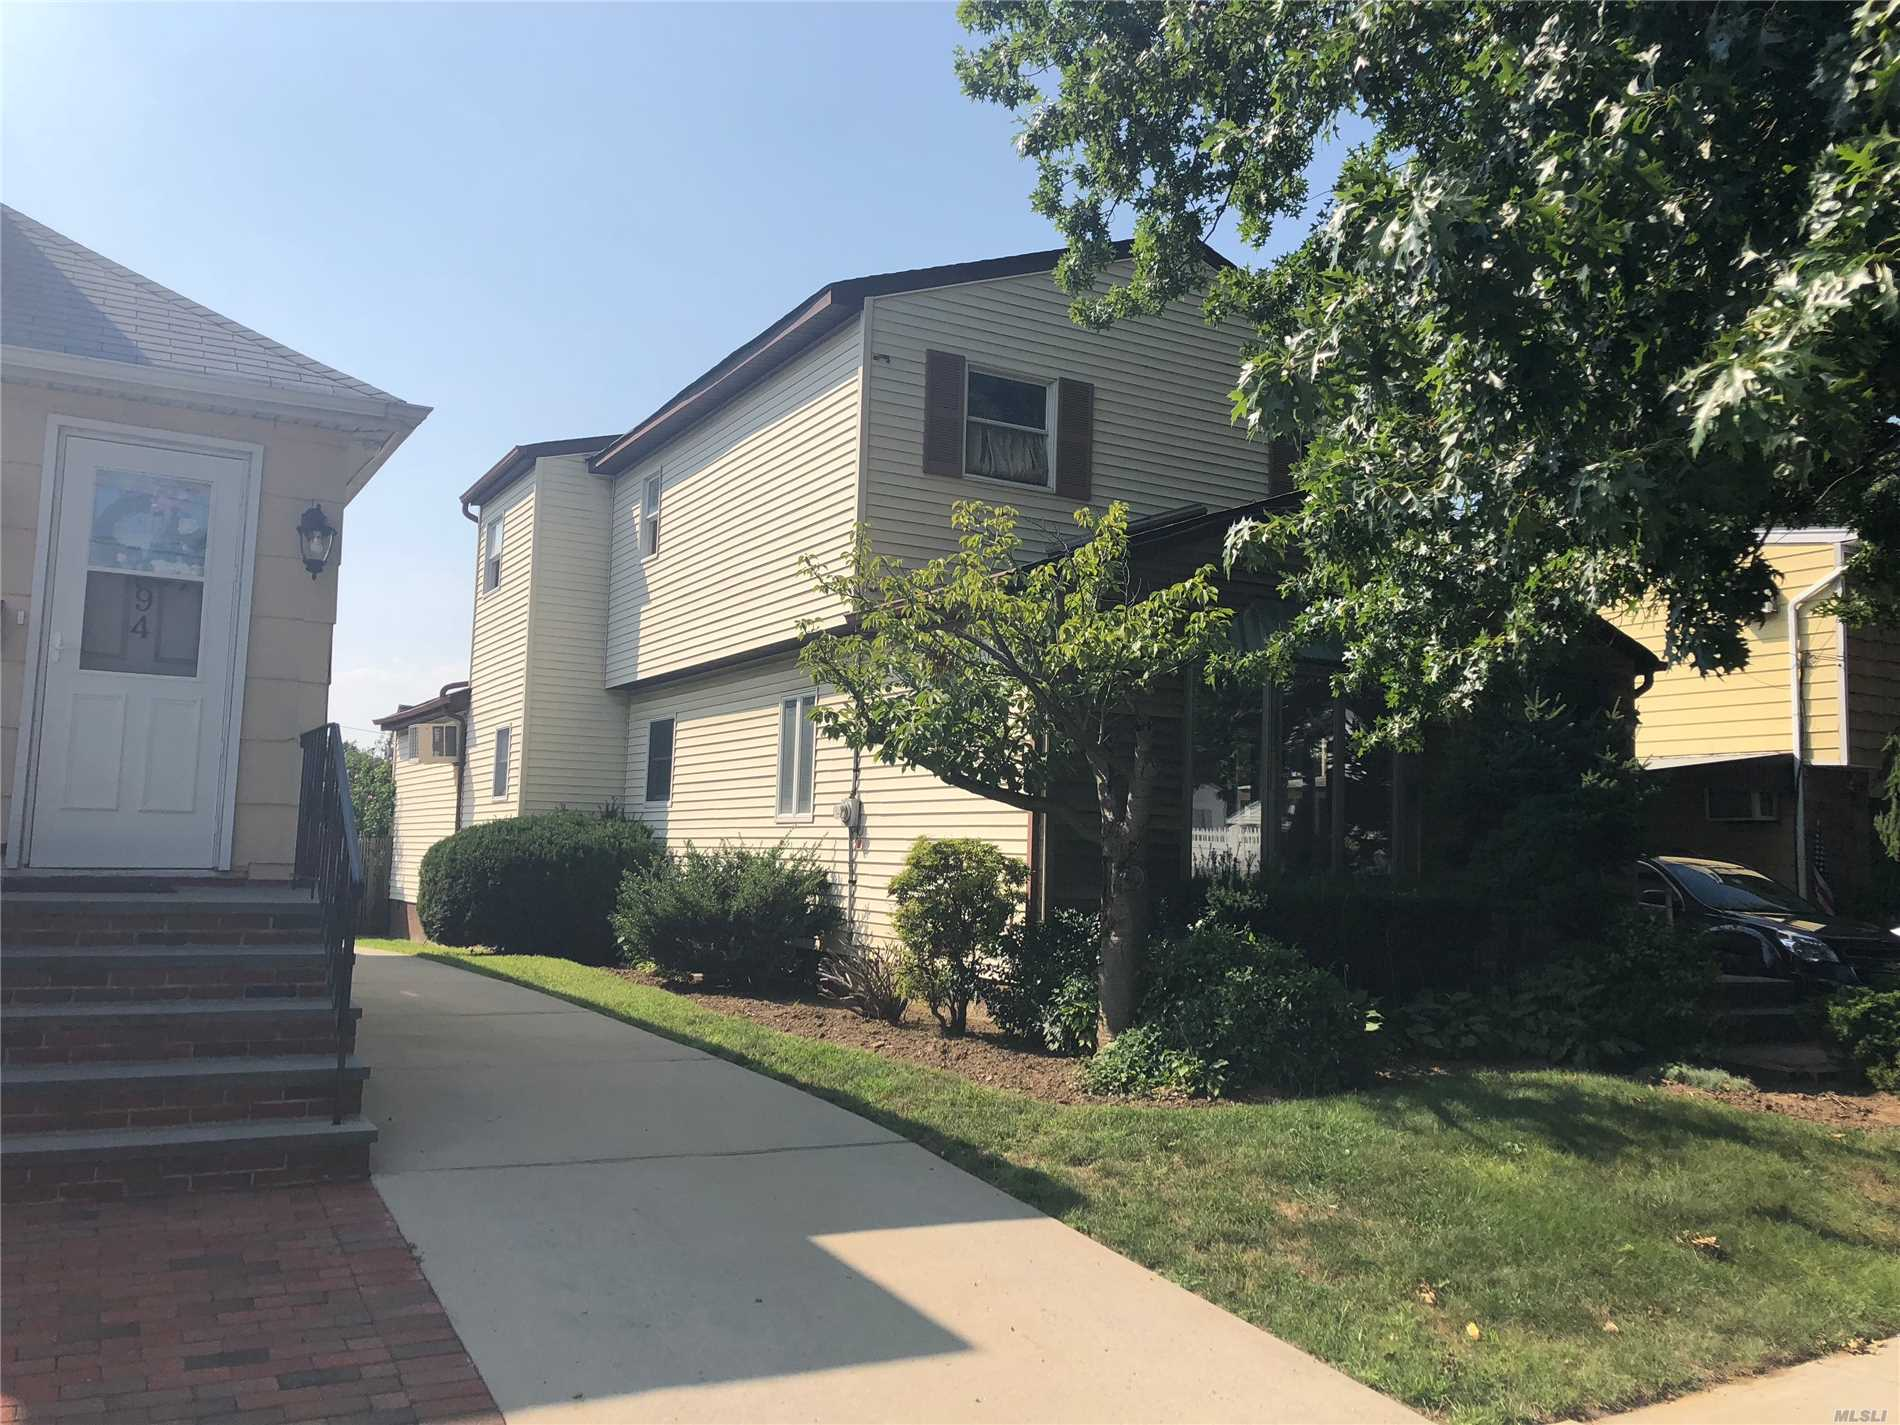 One Of A Kind, New Hardwood Floors Throughout, Updated Kitchen, Large Family Room With Fireplace, Full Bath And Laundry Area Completes The First Floor. Upstairs 3 Spacious Bedrooms And A Full Bath Completes This Lovely Home.